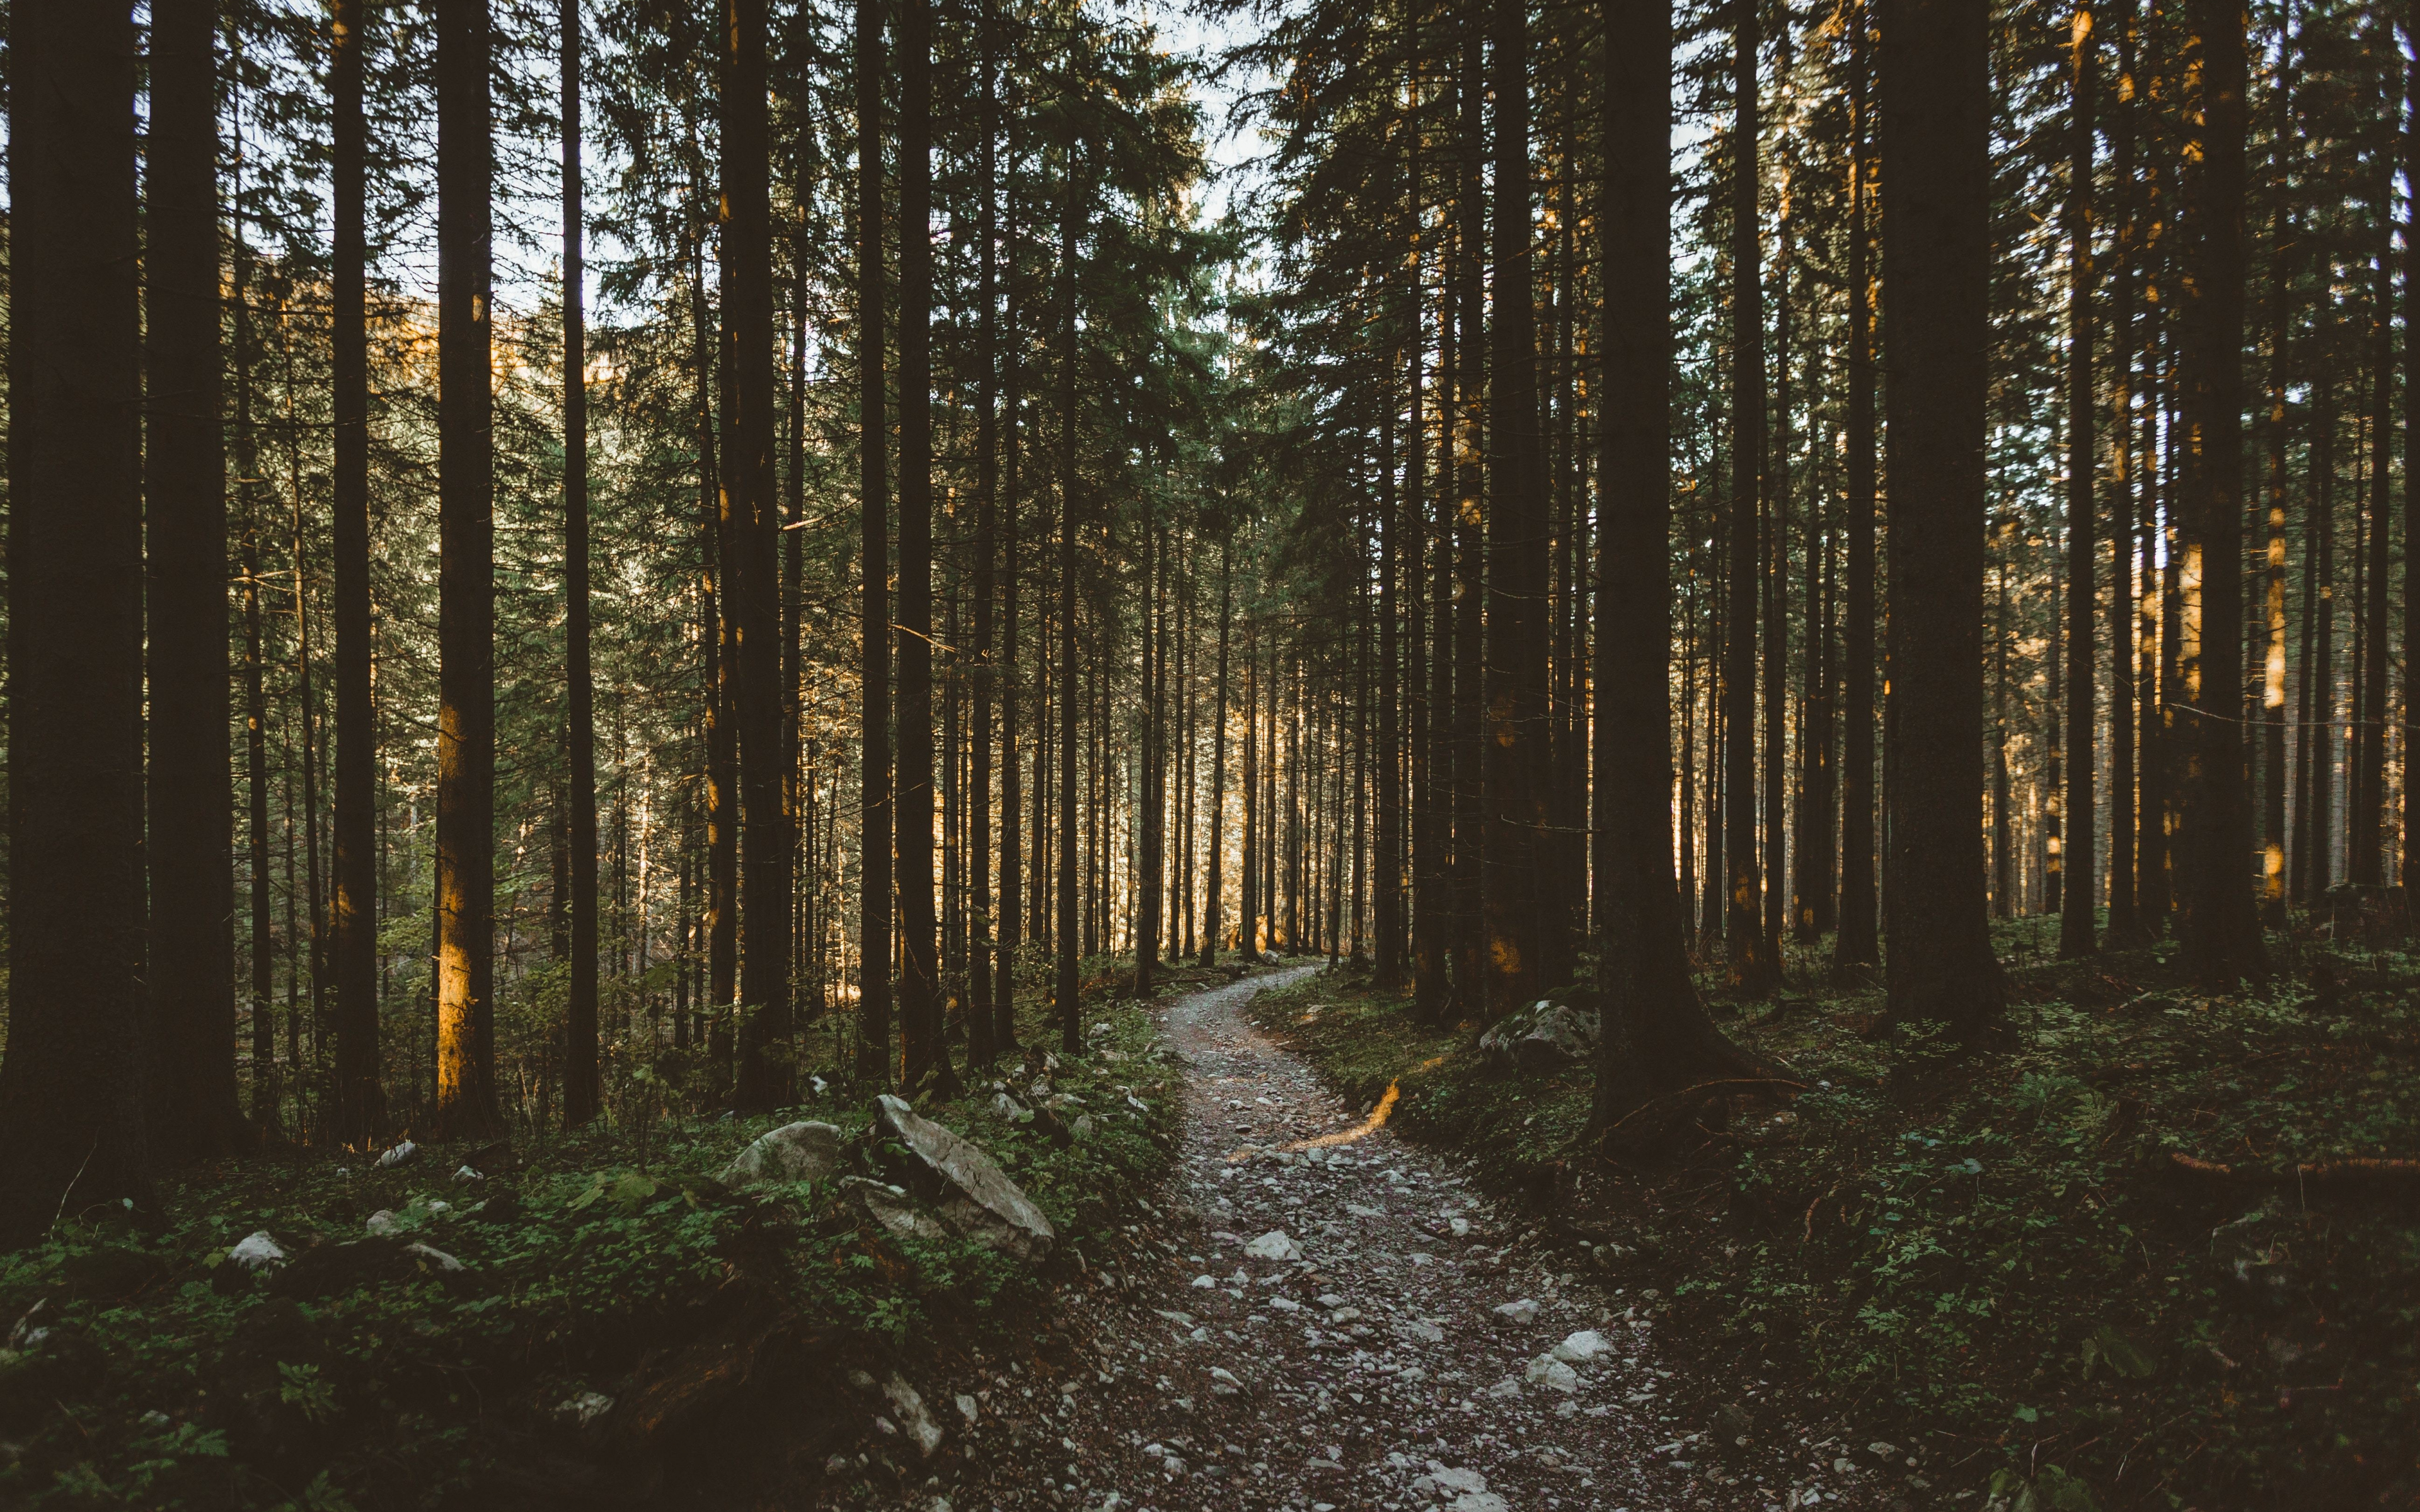 Download 3840x2400 wallpaper sunbeams morning forest pathway nature 4k ultra hd 16 10 - Background images 4k hd ...